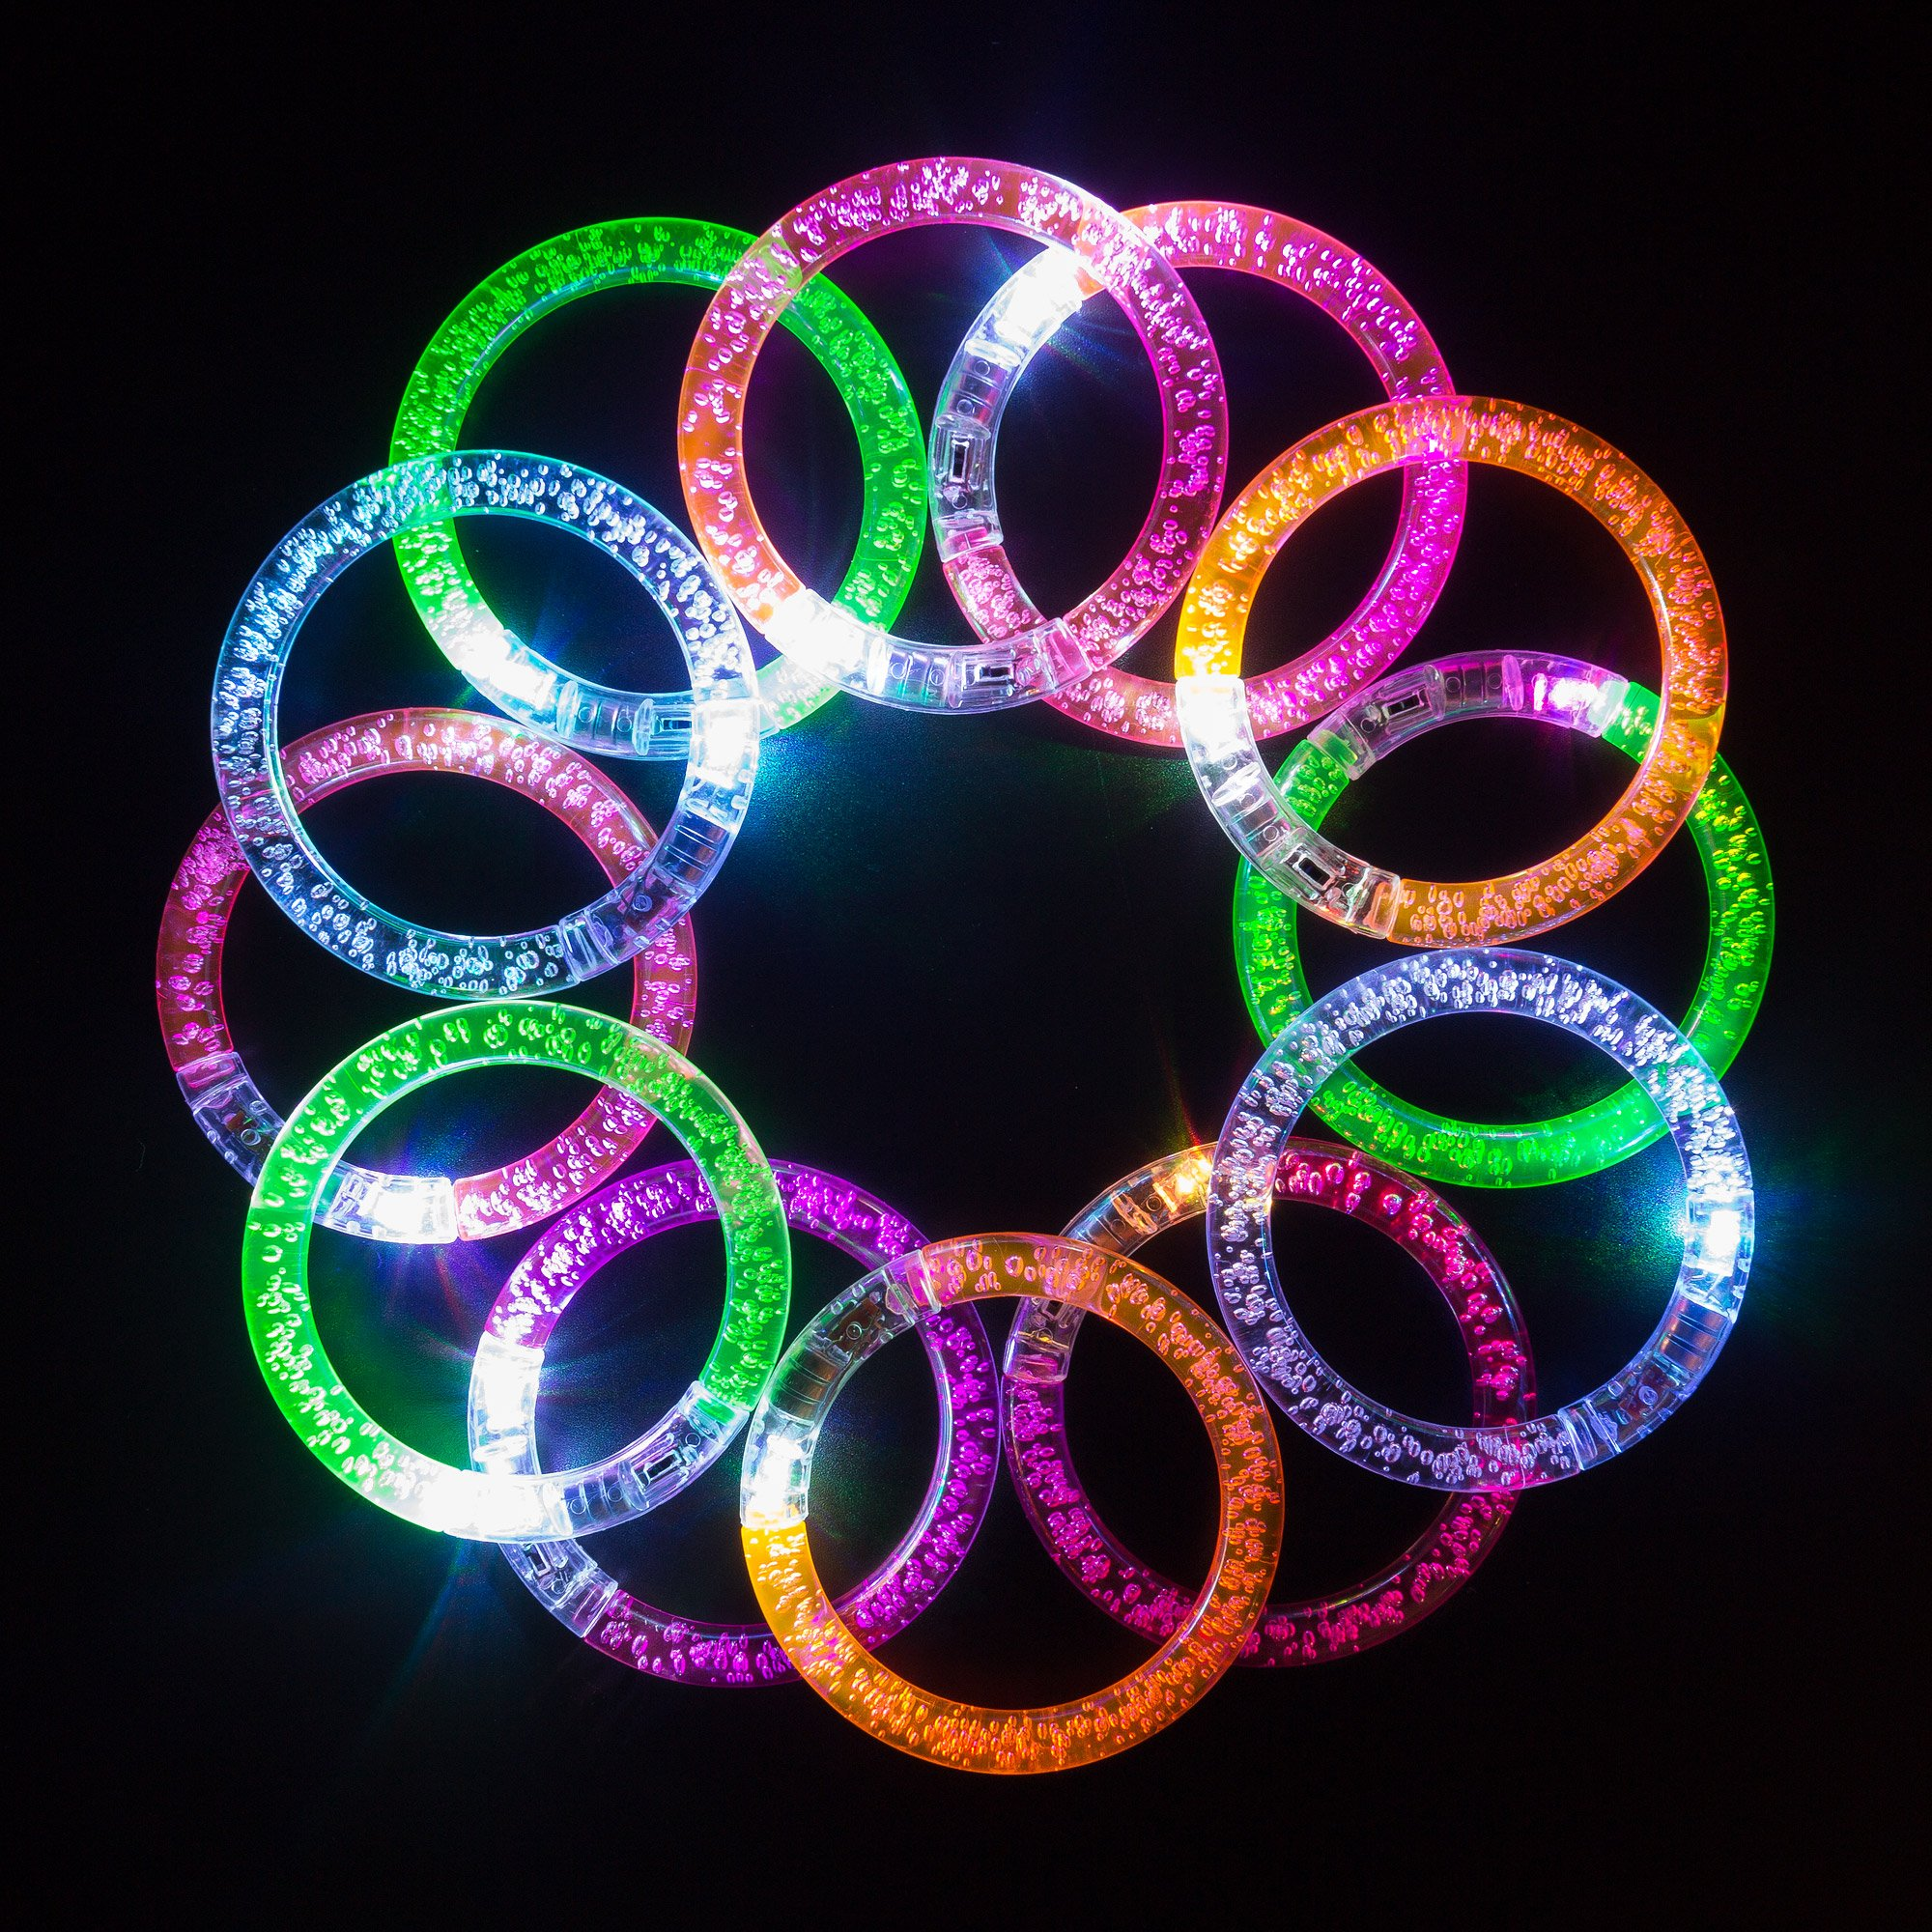 Coral Entertainments Led Bracelets 12 Pack + 12 Replacement Batteries Premium Glow in The Dark, Great for Parties, Weddings Birthdays and More. Super Safety Multicolor Bracelets are Reusable by Coral Entertainments